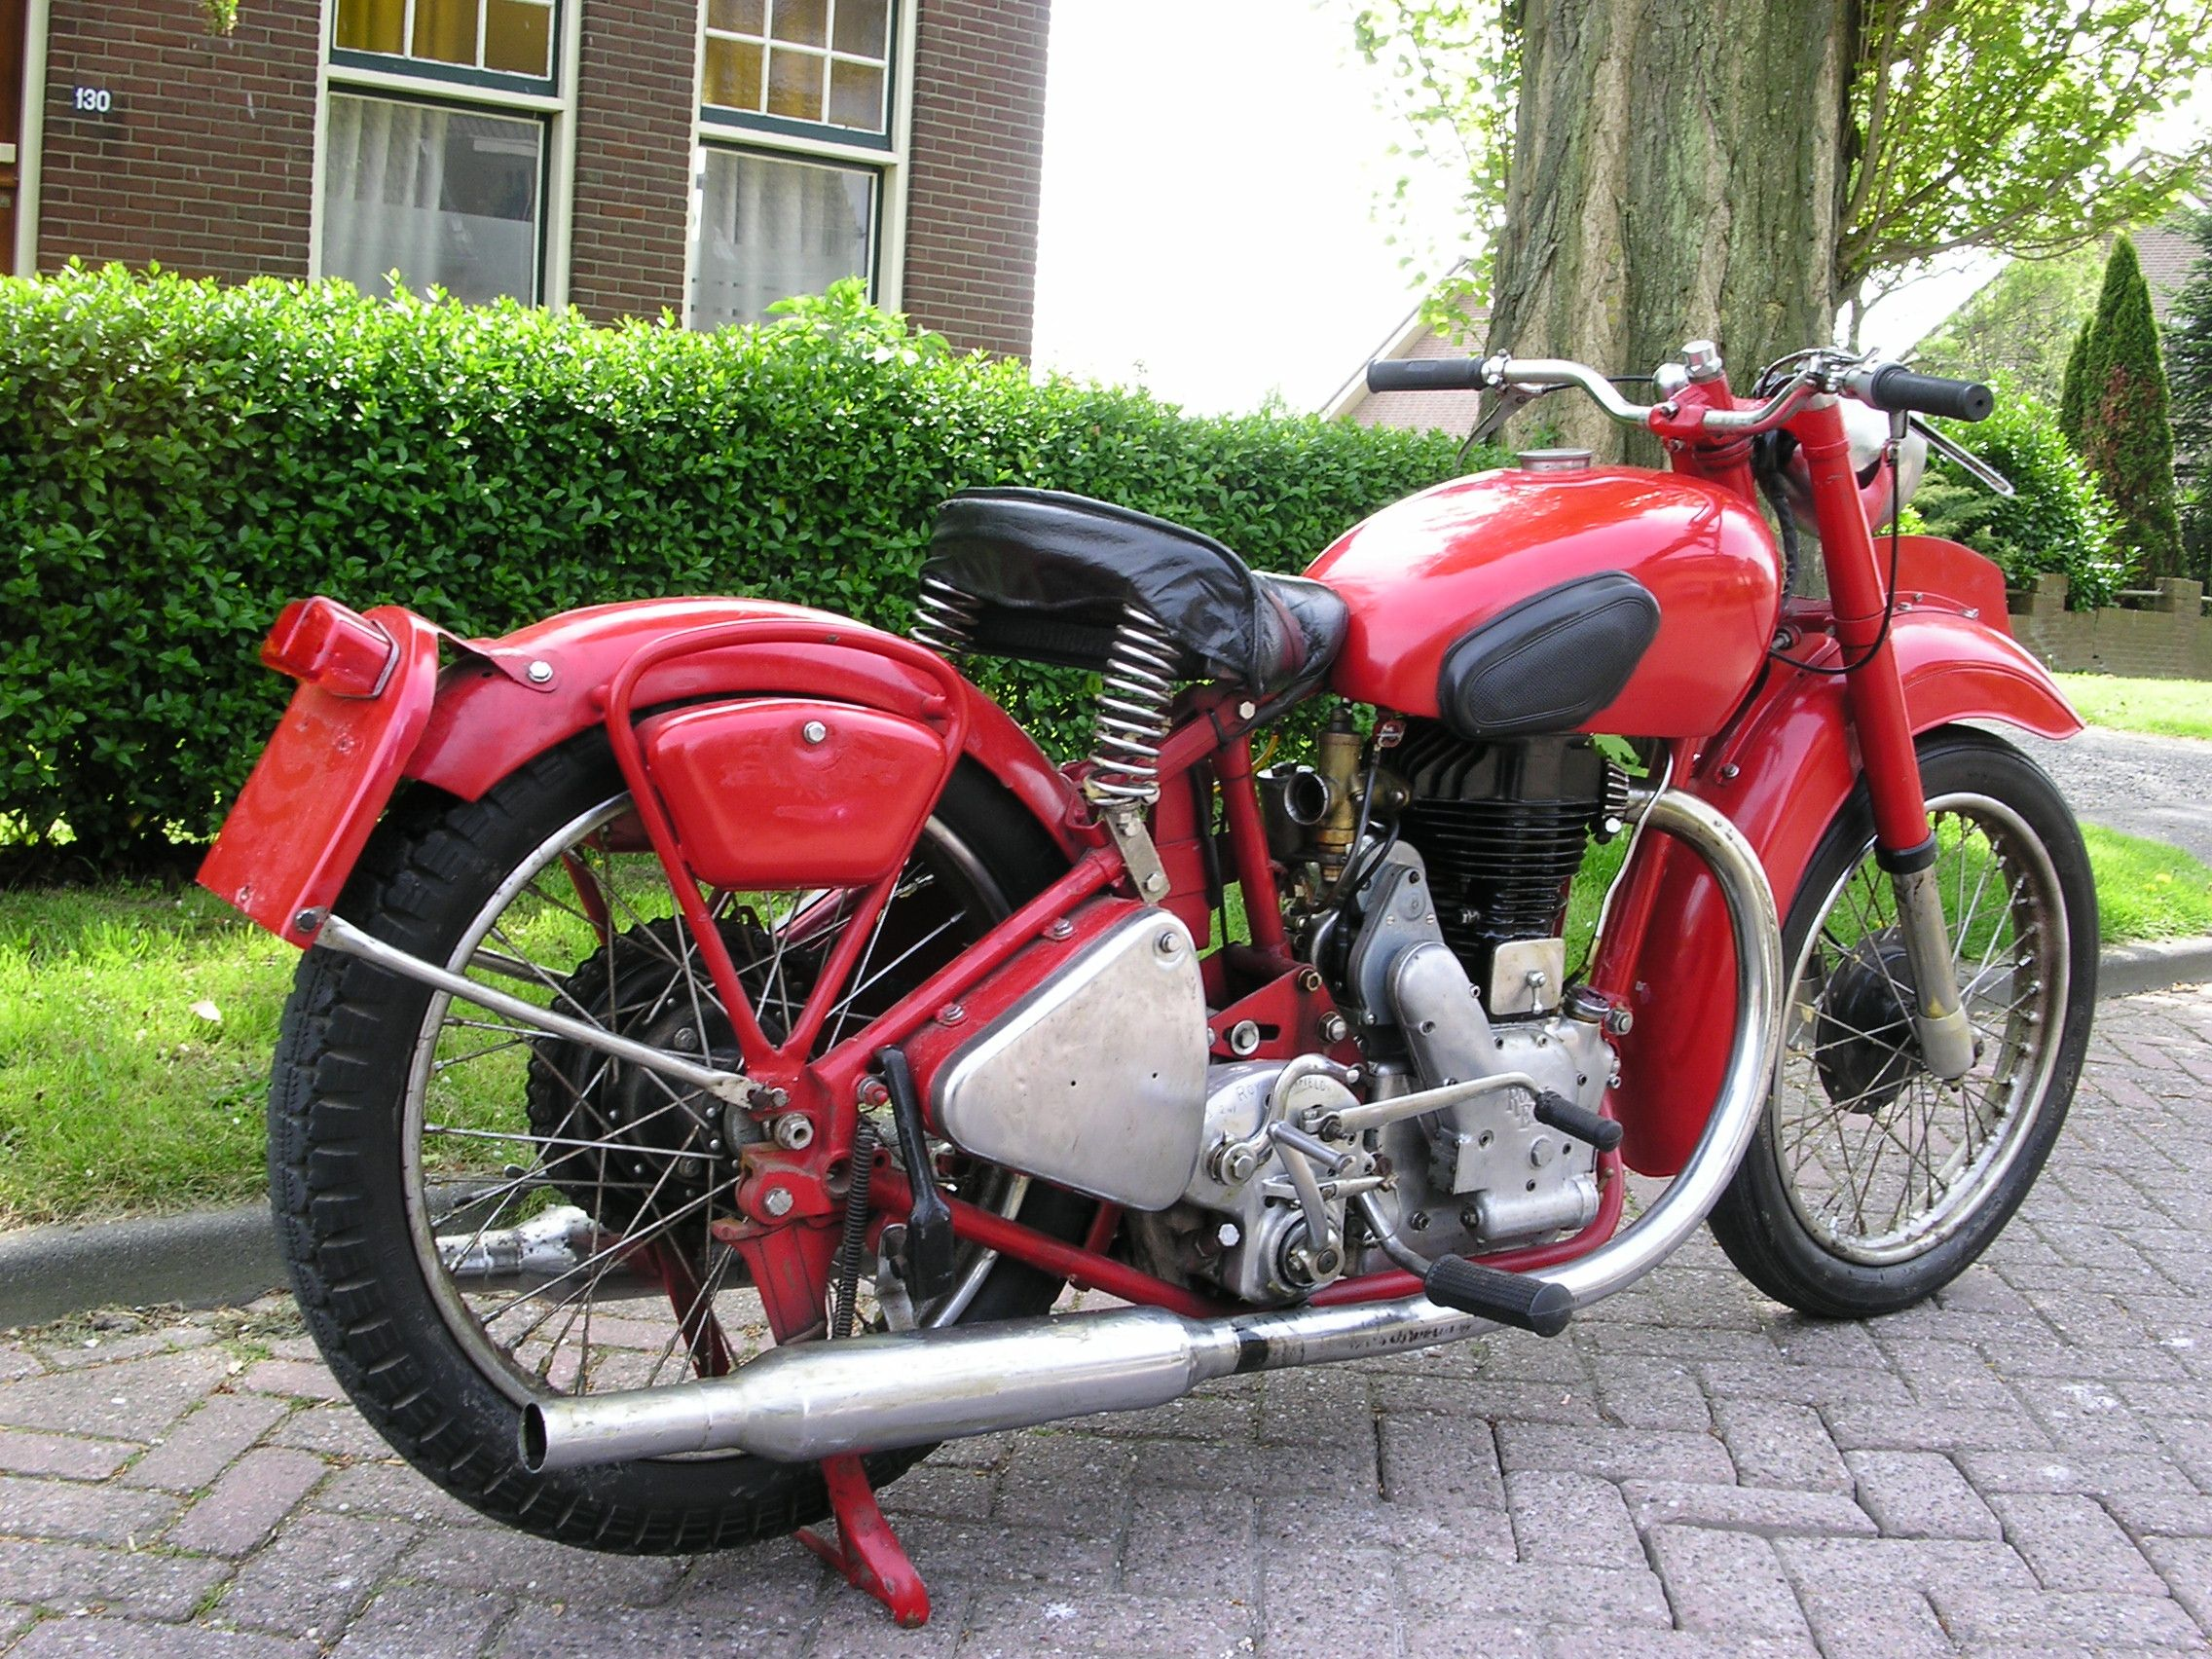 1948 Royal Enfield J2 500cc Single Cylinder Two Exhaust Ports